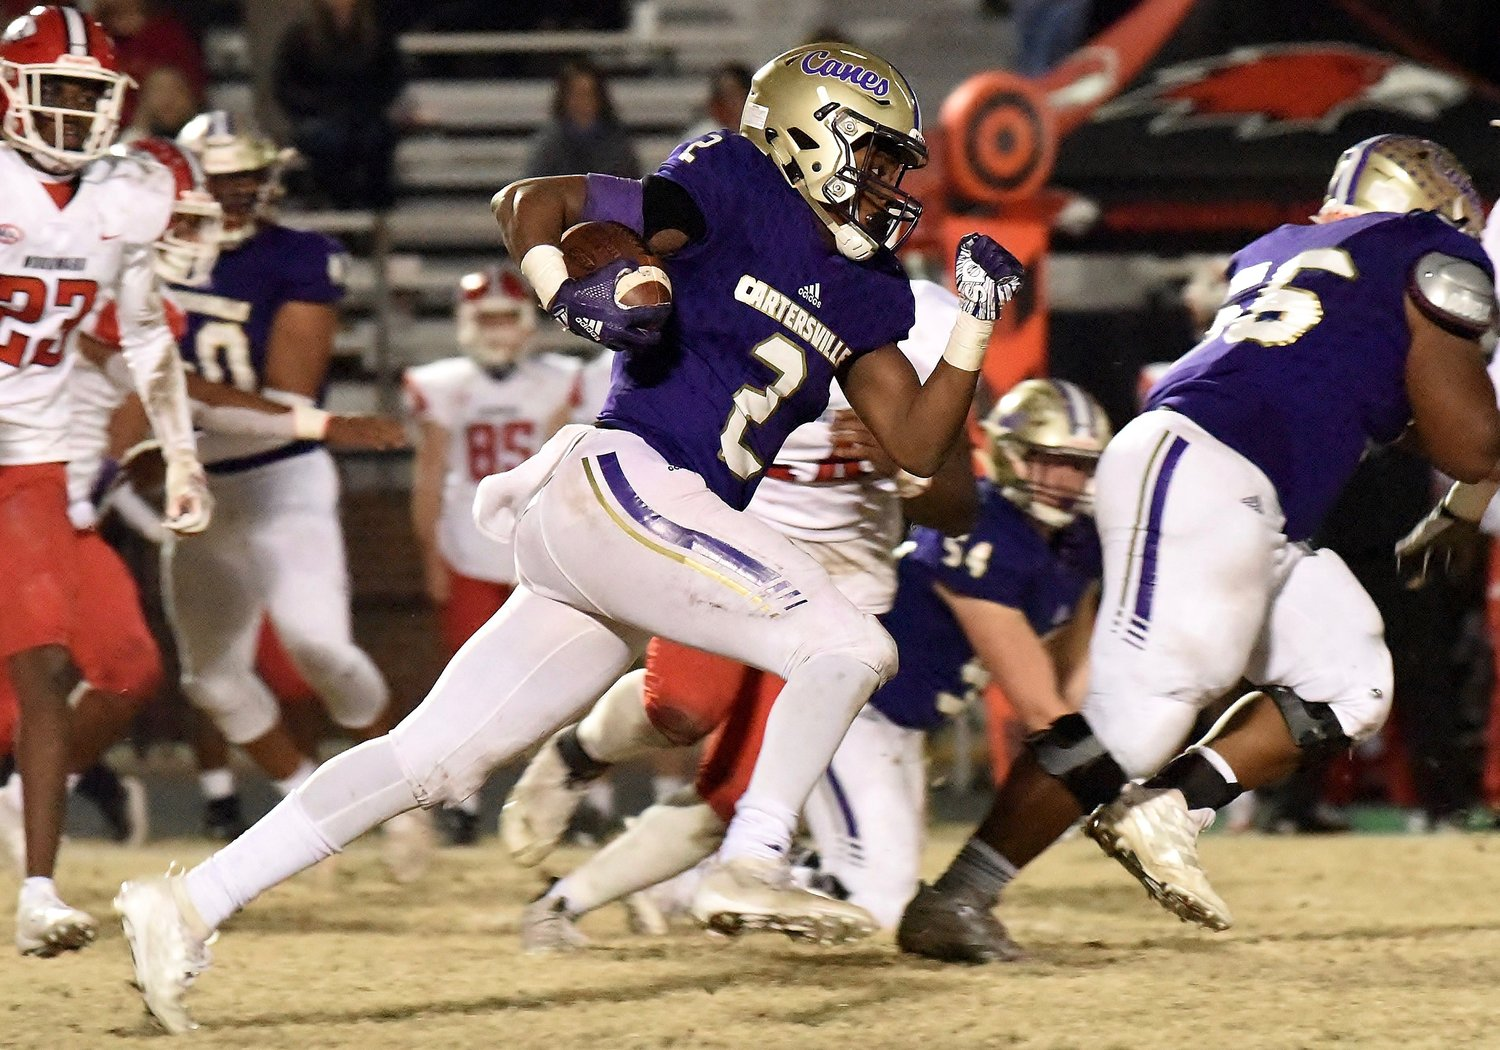 Cartersville junior running back Quante Jennings heads upfield during Friday's game at Weinman Stadium. Jennings is one of several underclassmen, along with blockers Hayden Cagle (54) and Devin Luckett (56), set to return for the Canes next season.